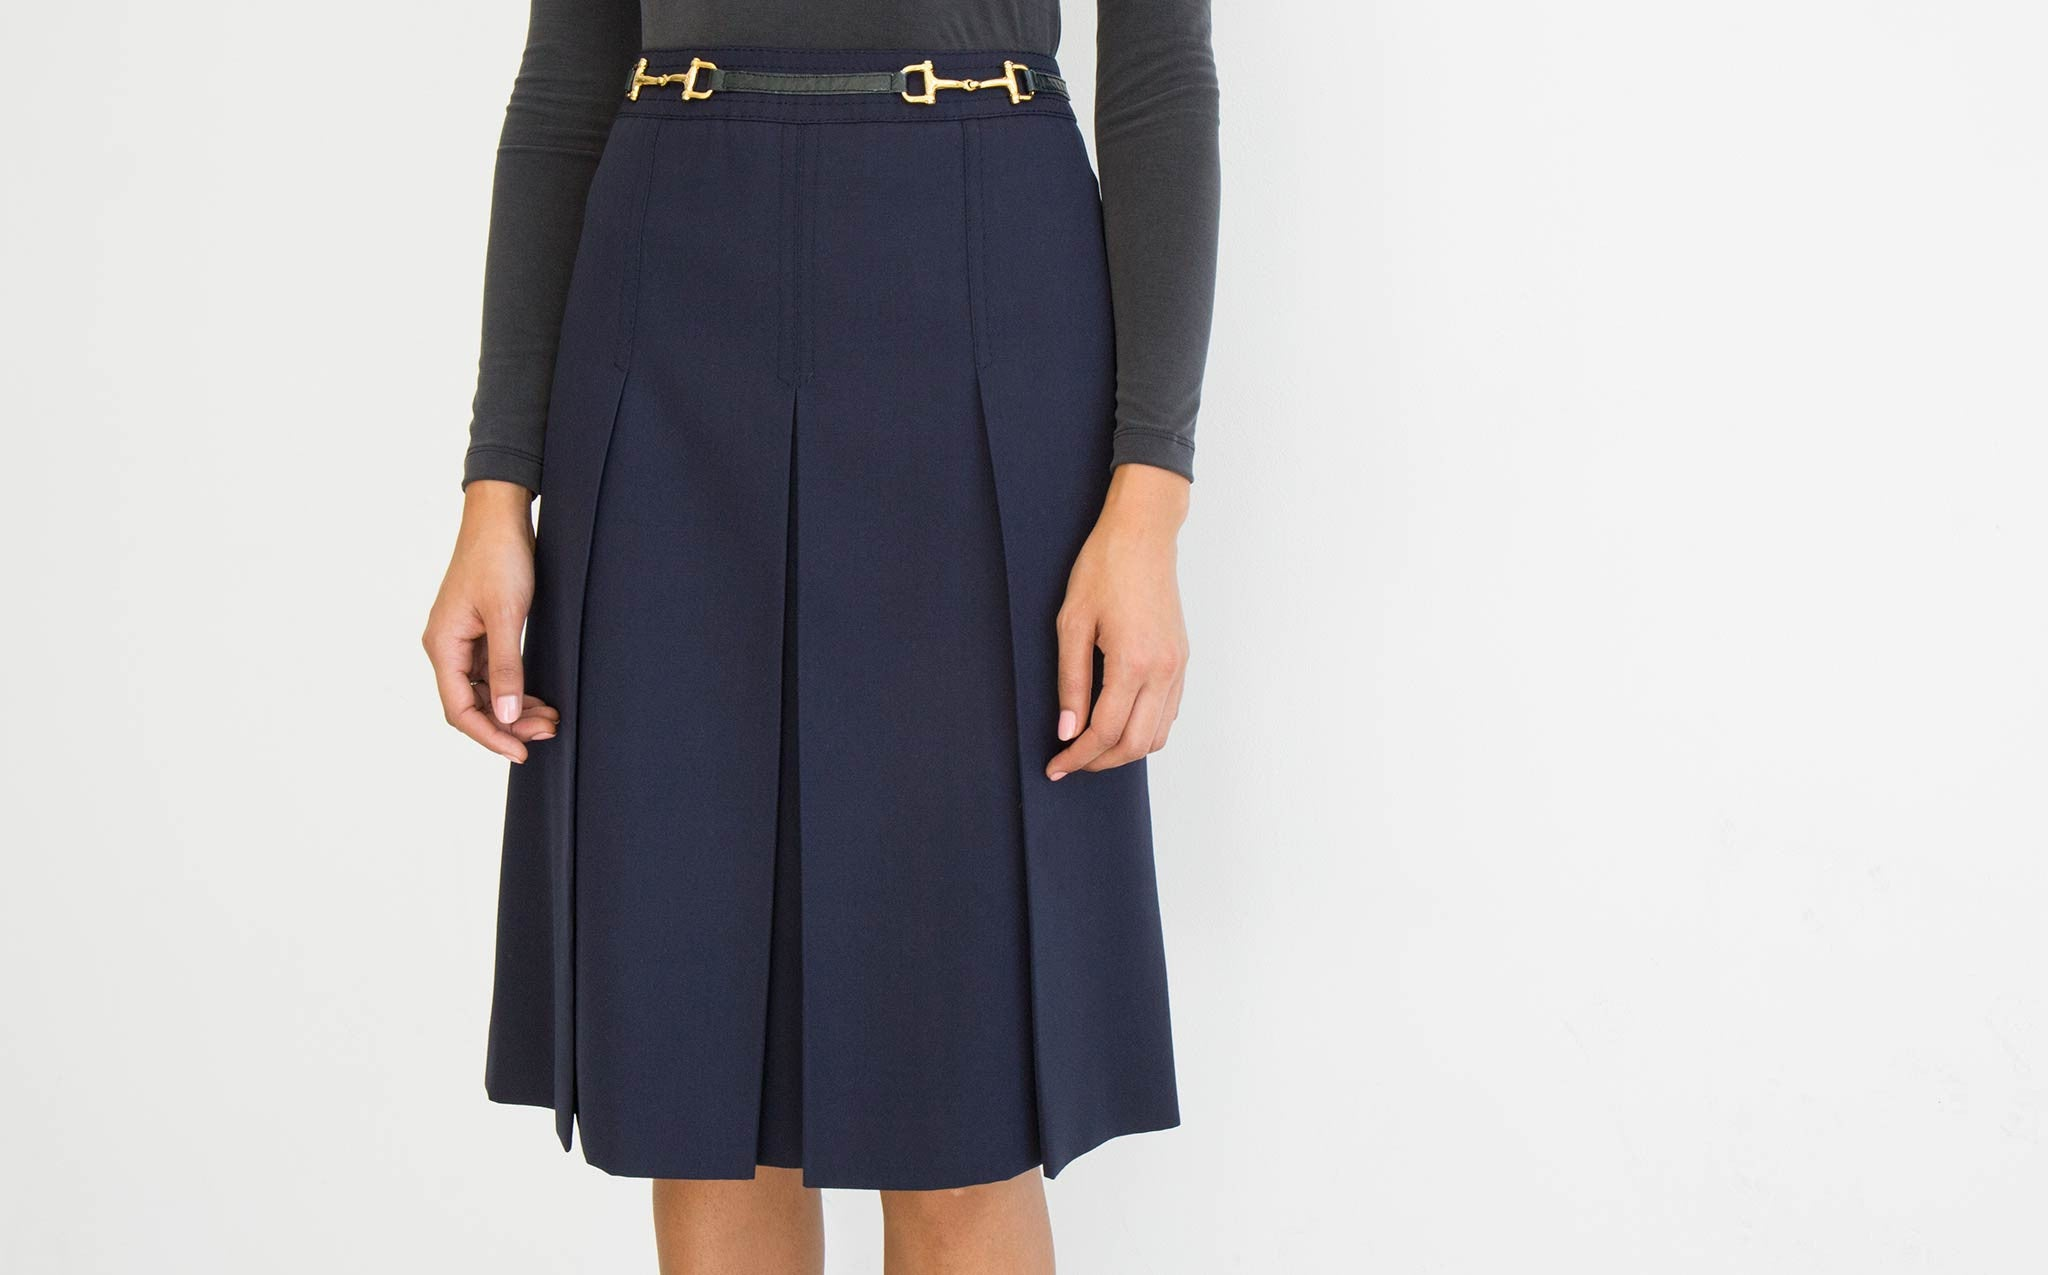 Celine Pleat Front Skirt